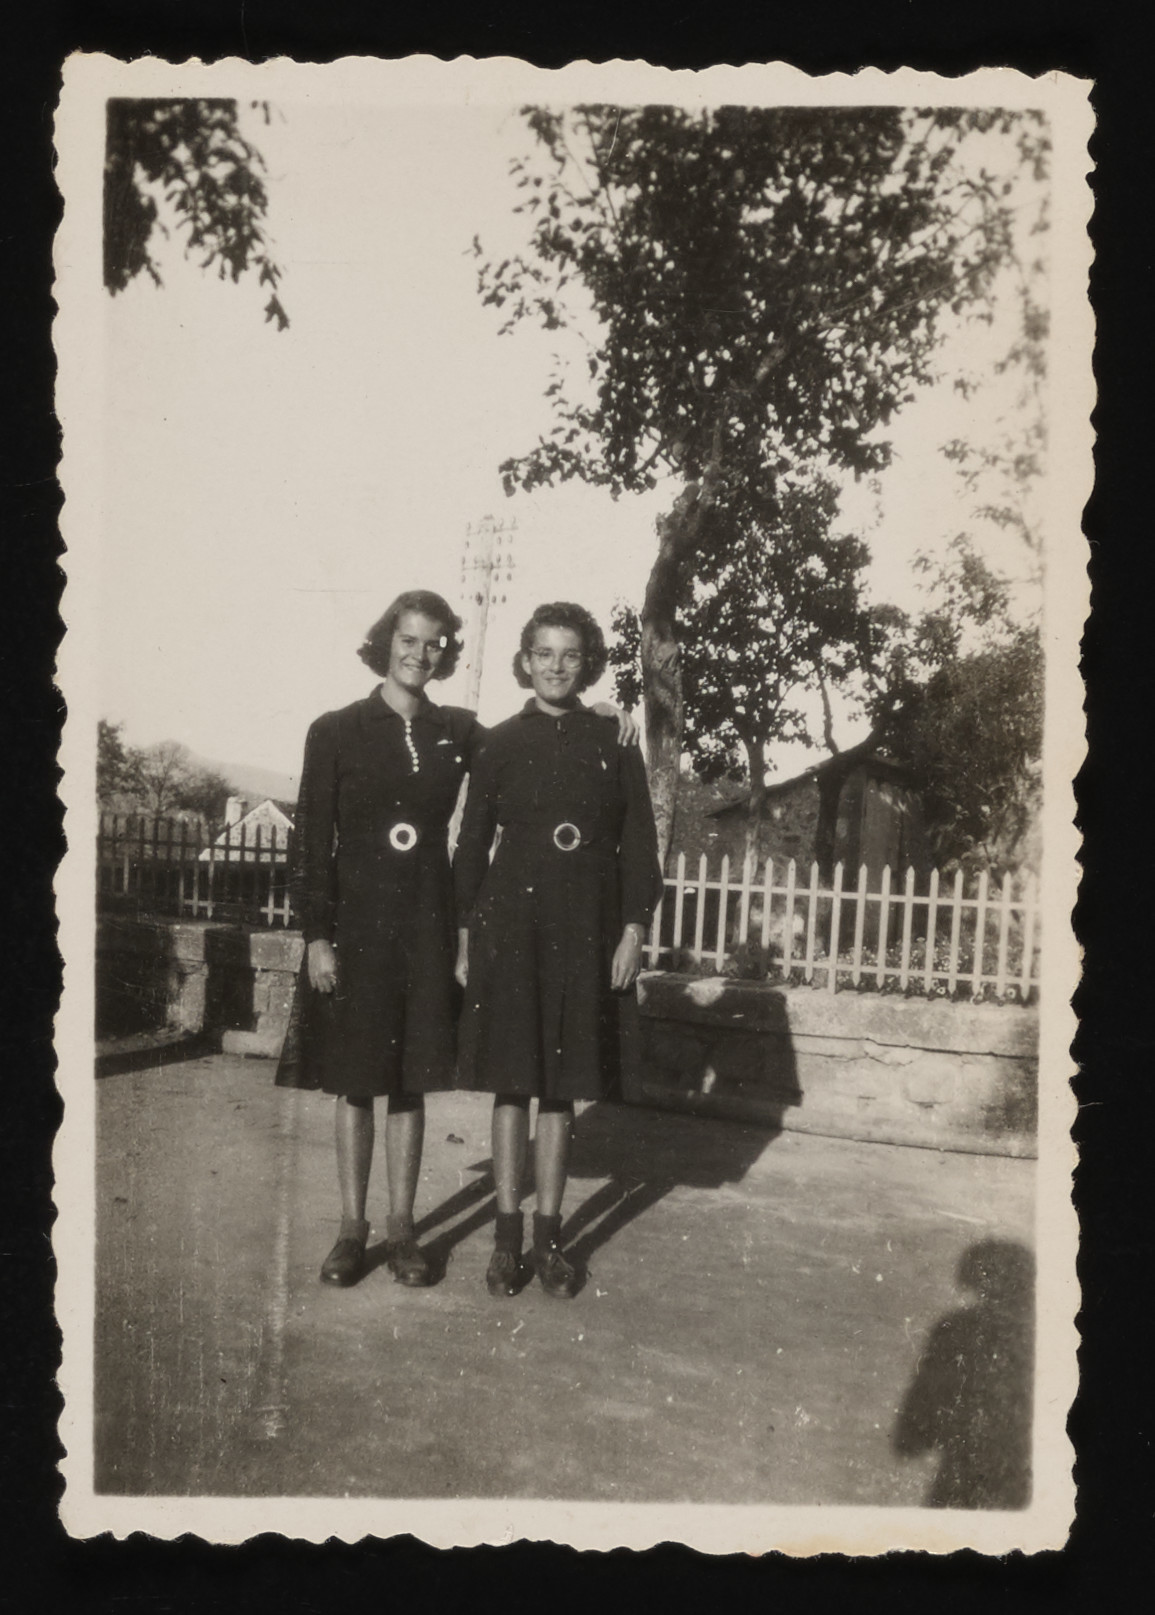 Portrait of the Gouthier twins, two Jewish girls hiding in Le Chambon.